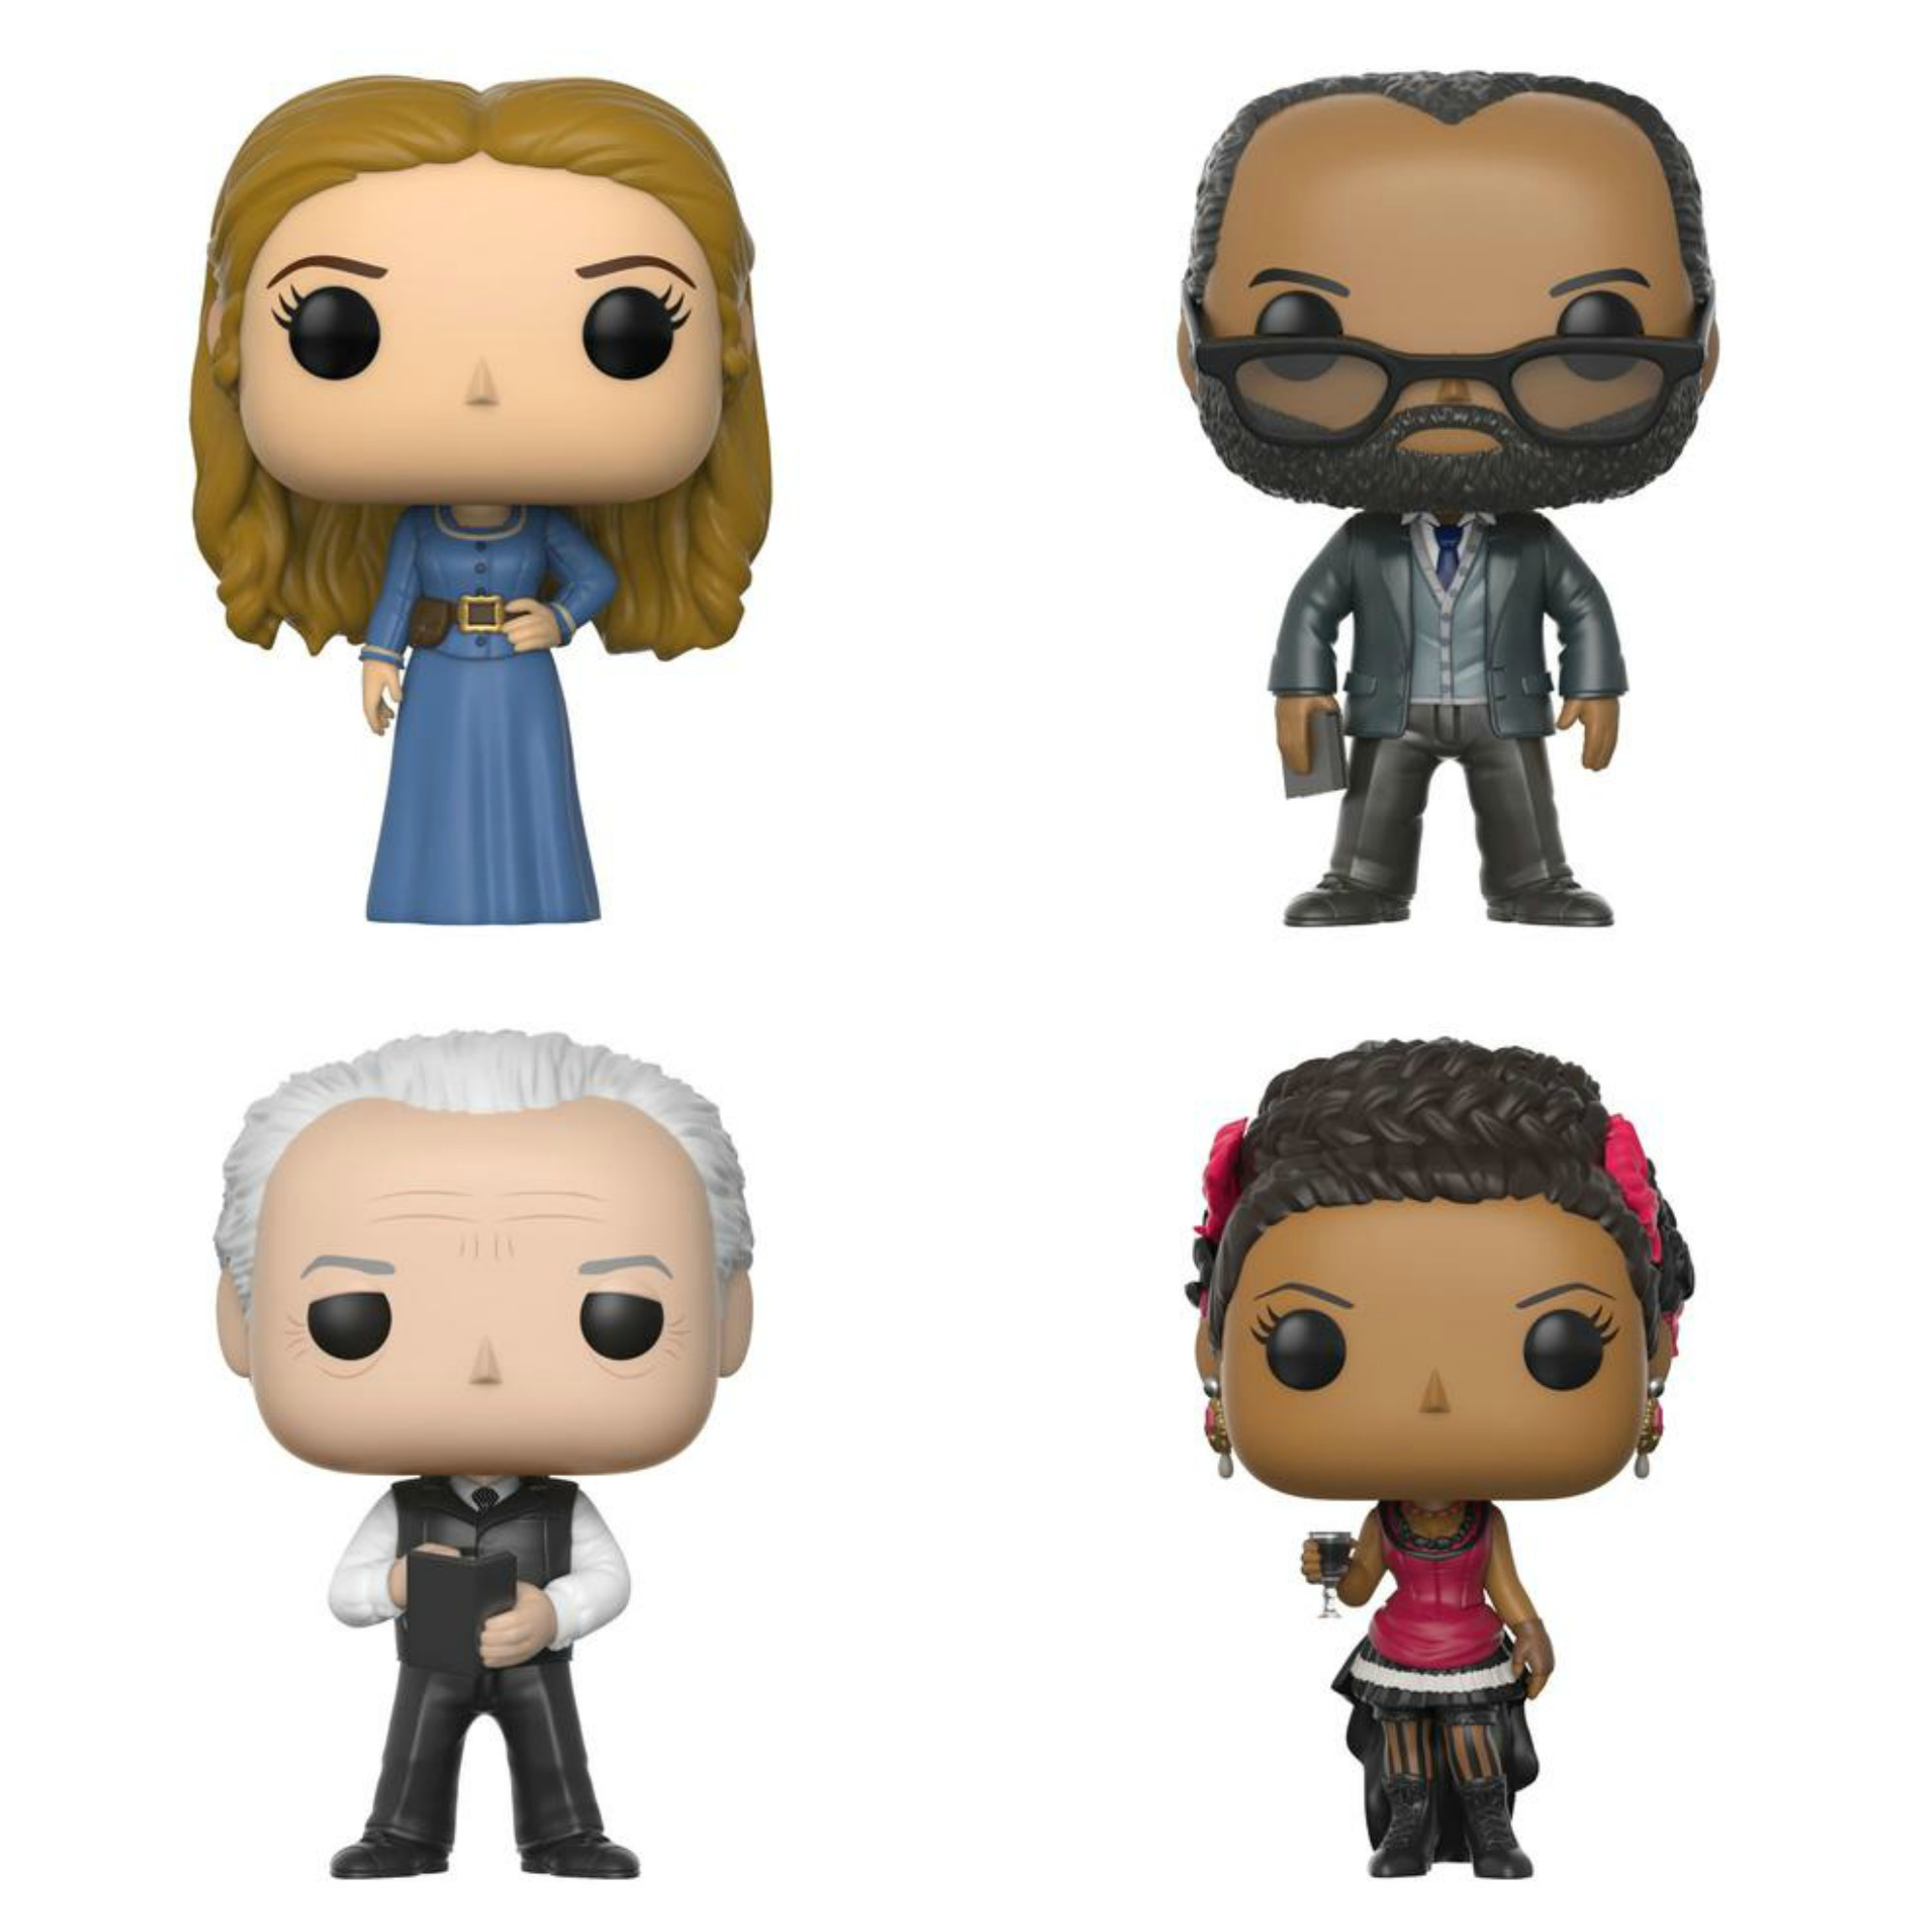 Westworld Funko Pop collage